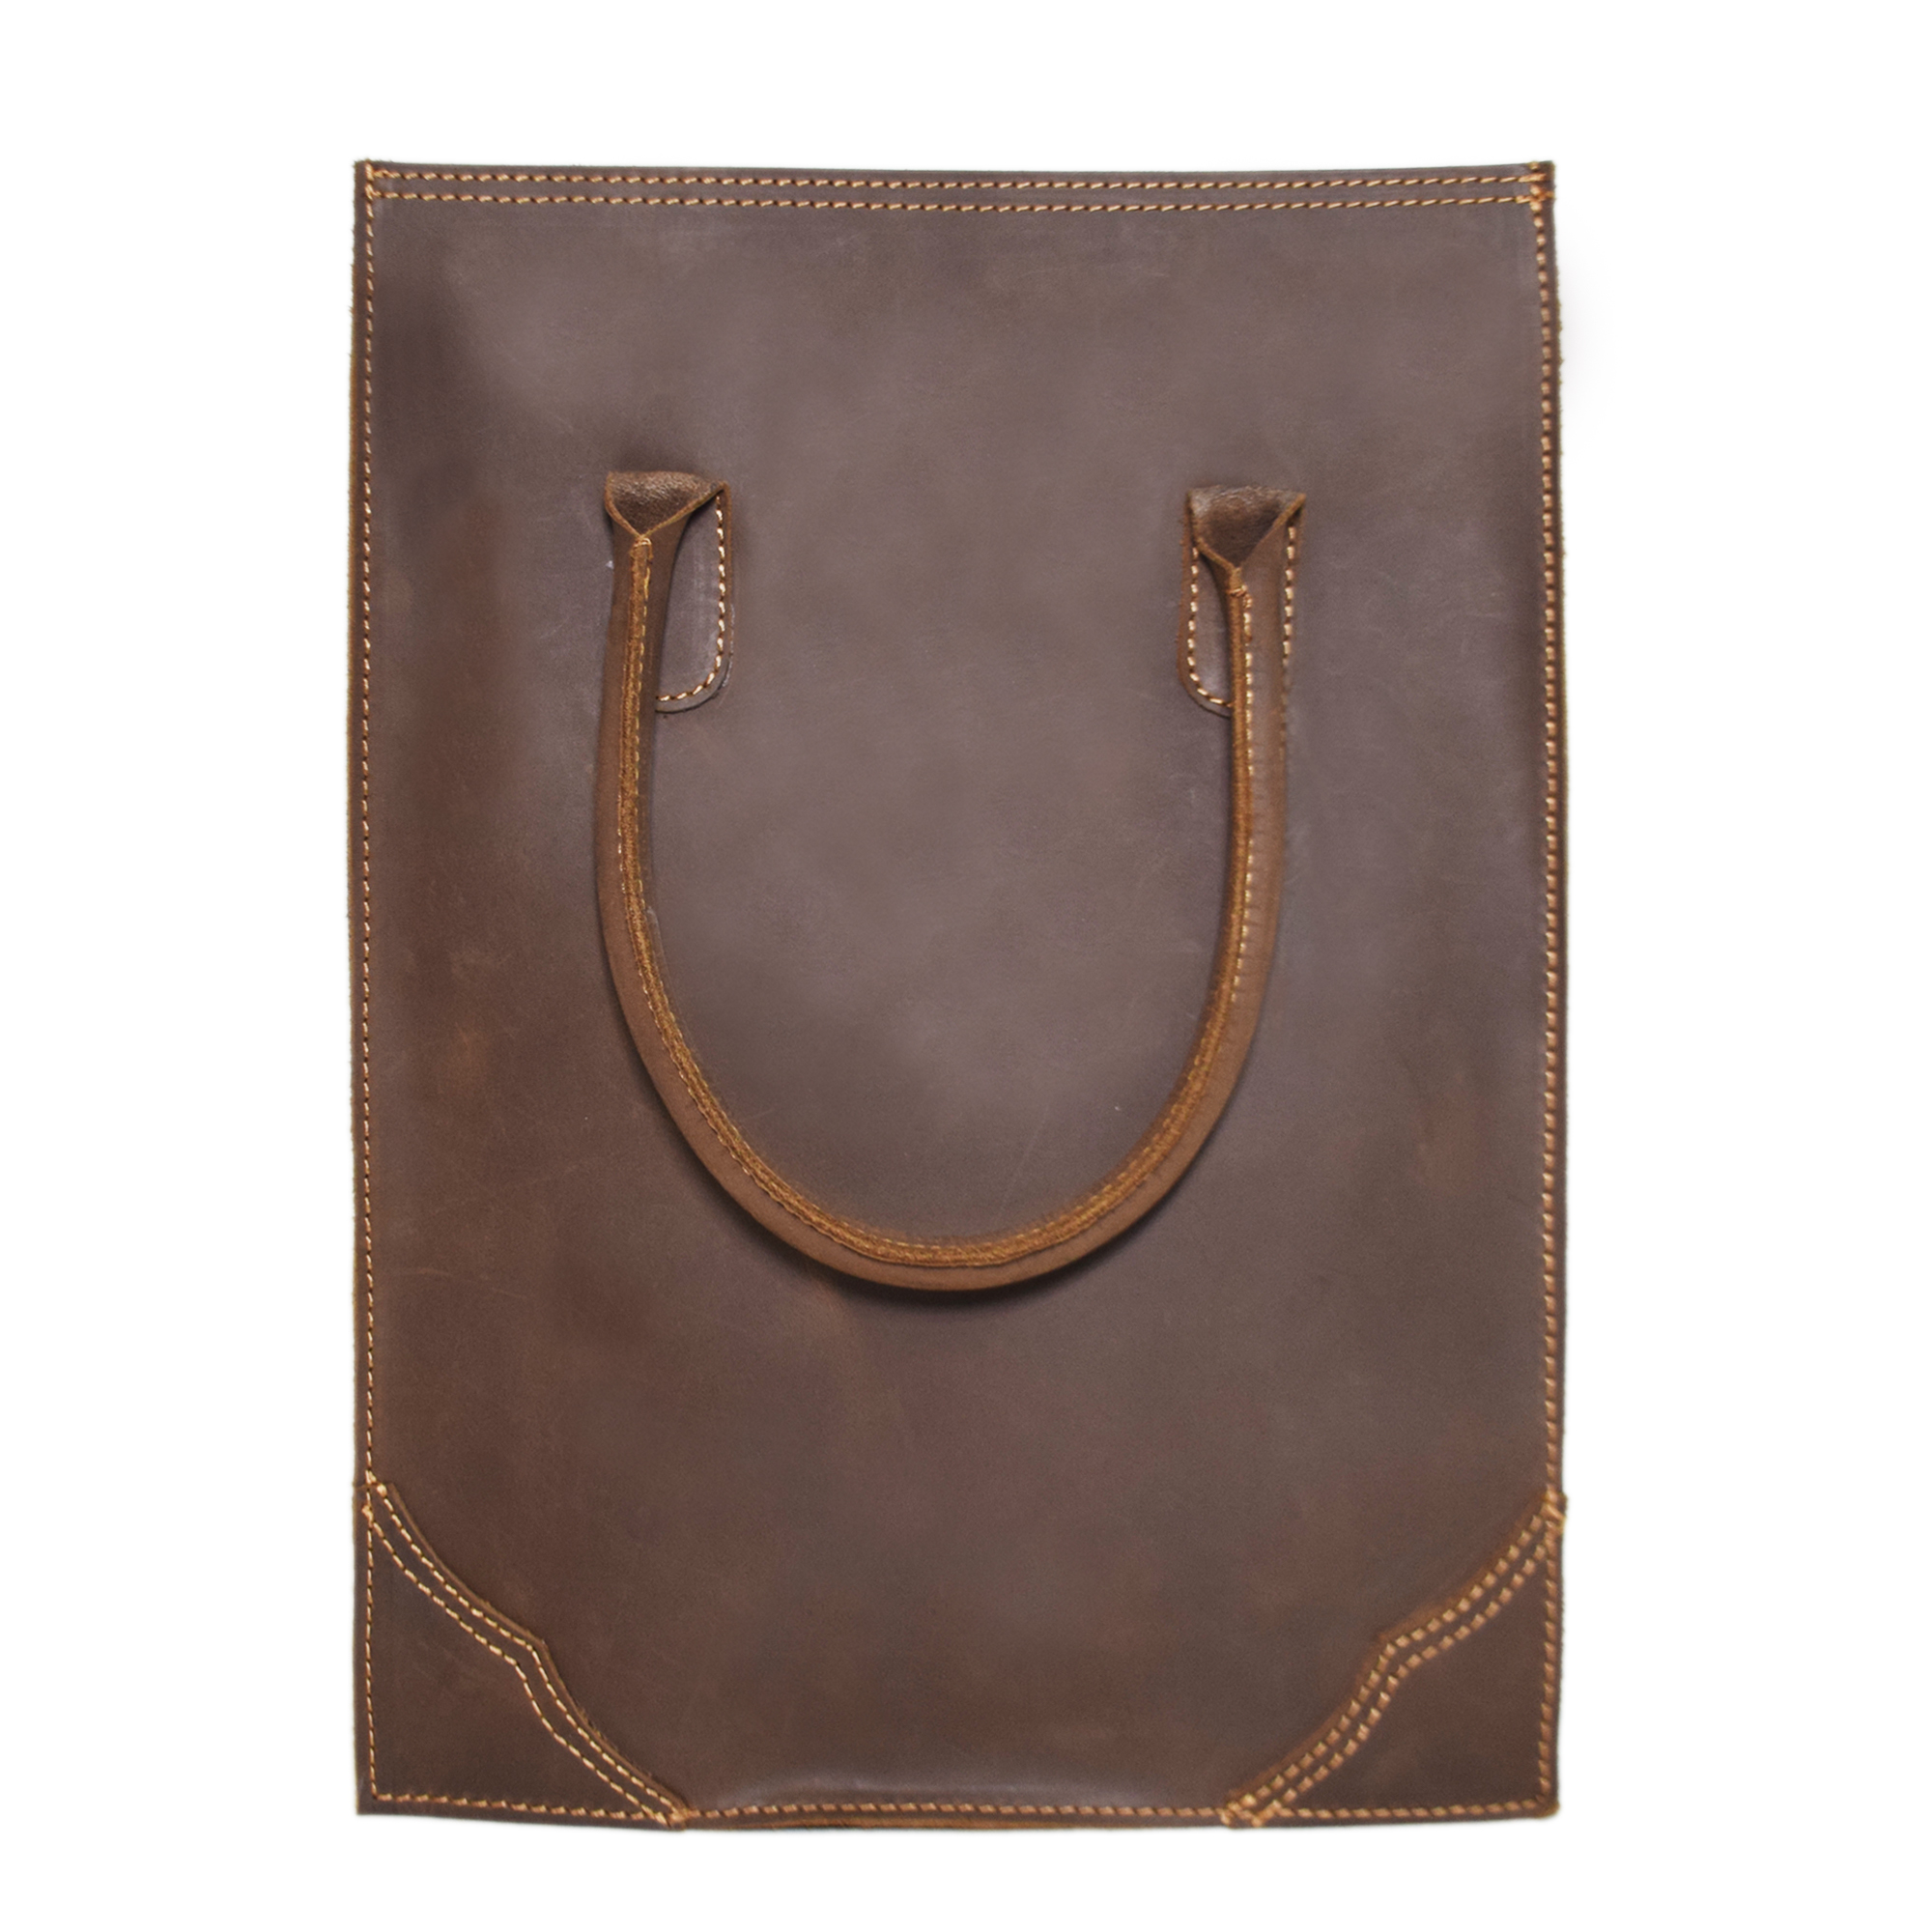 SIMPLE BROWN LEATHER TOTE BAG WITH SHOULDER BELT